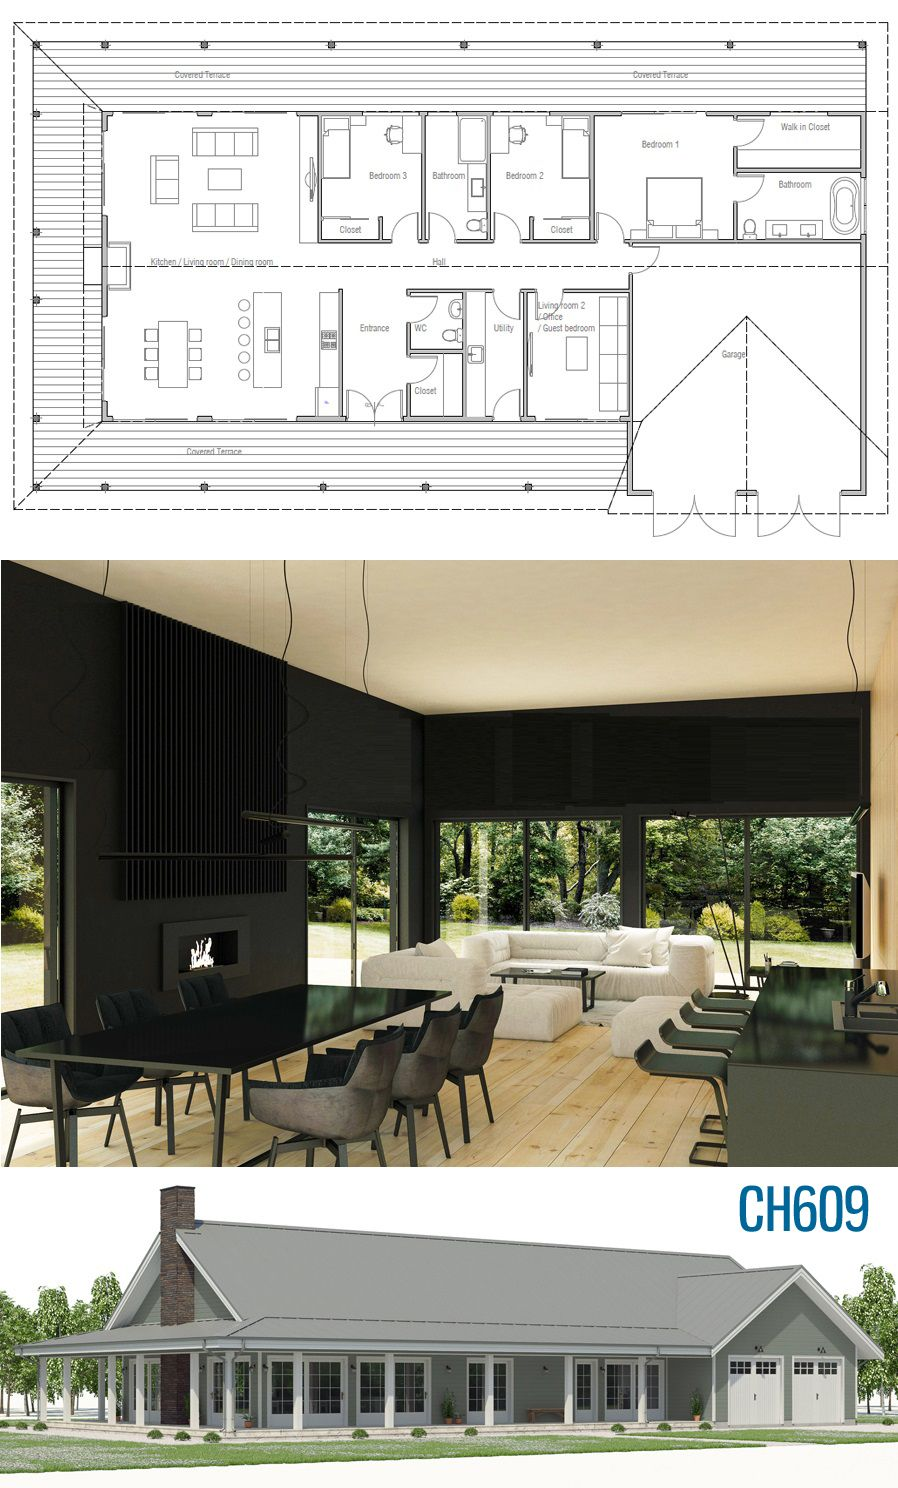 Architectural Design Ch615 House Plans New House Plans Hotel Floor Plan